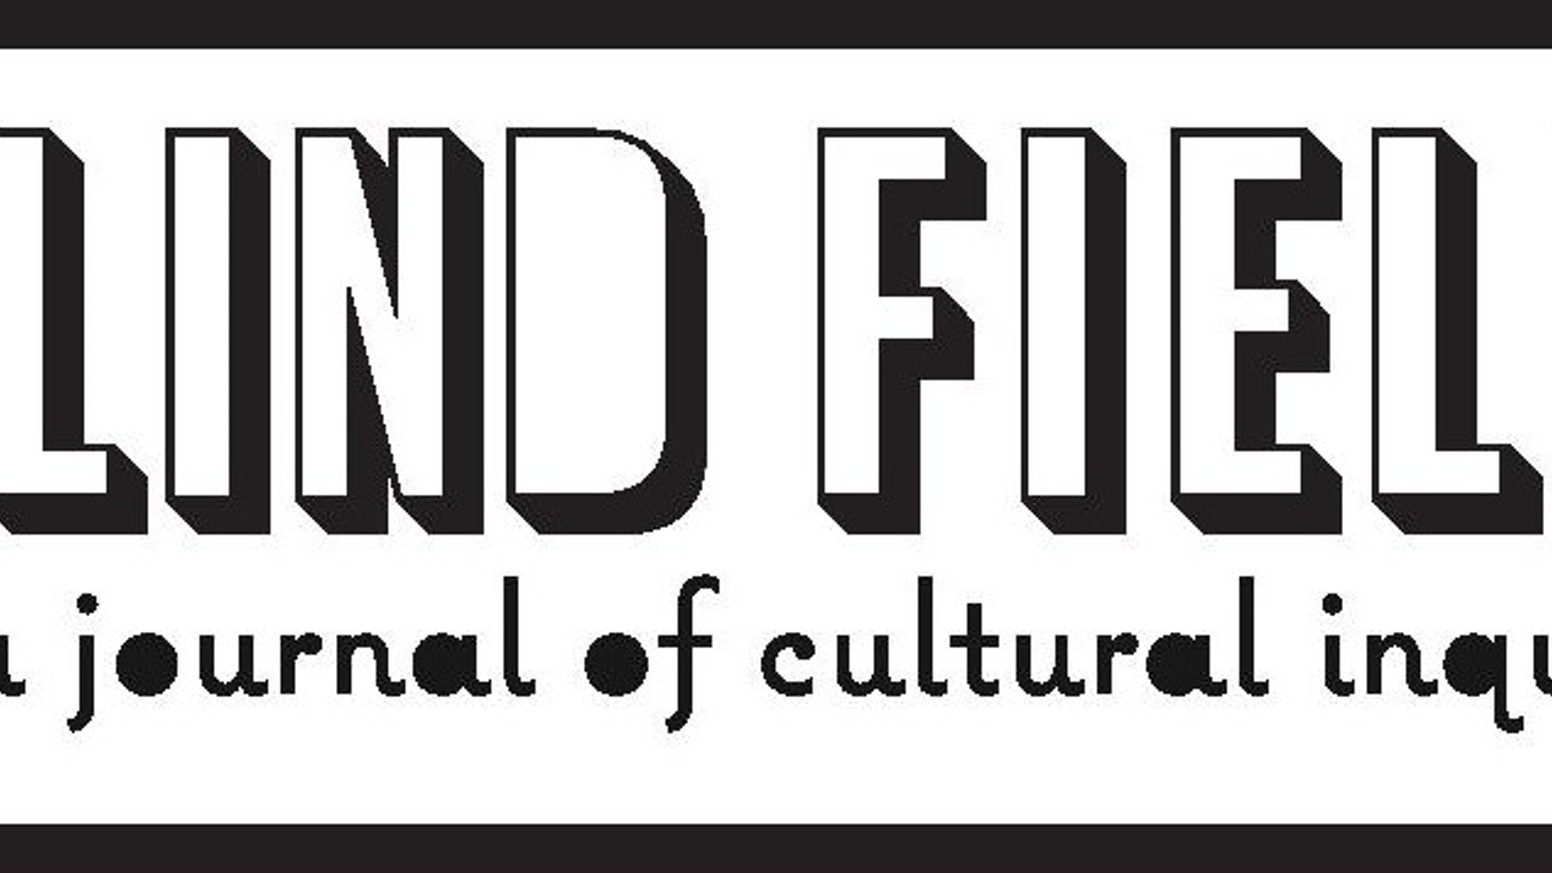 Blind Field: A Journal of Cultural Inquiry by Blind Field